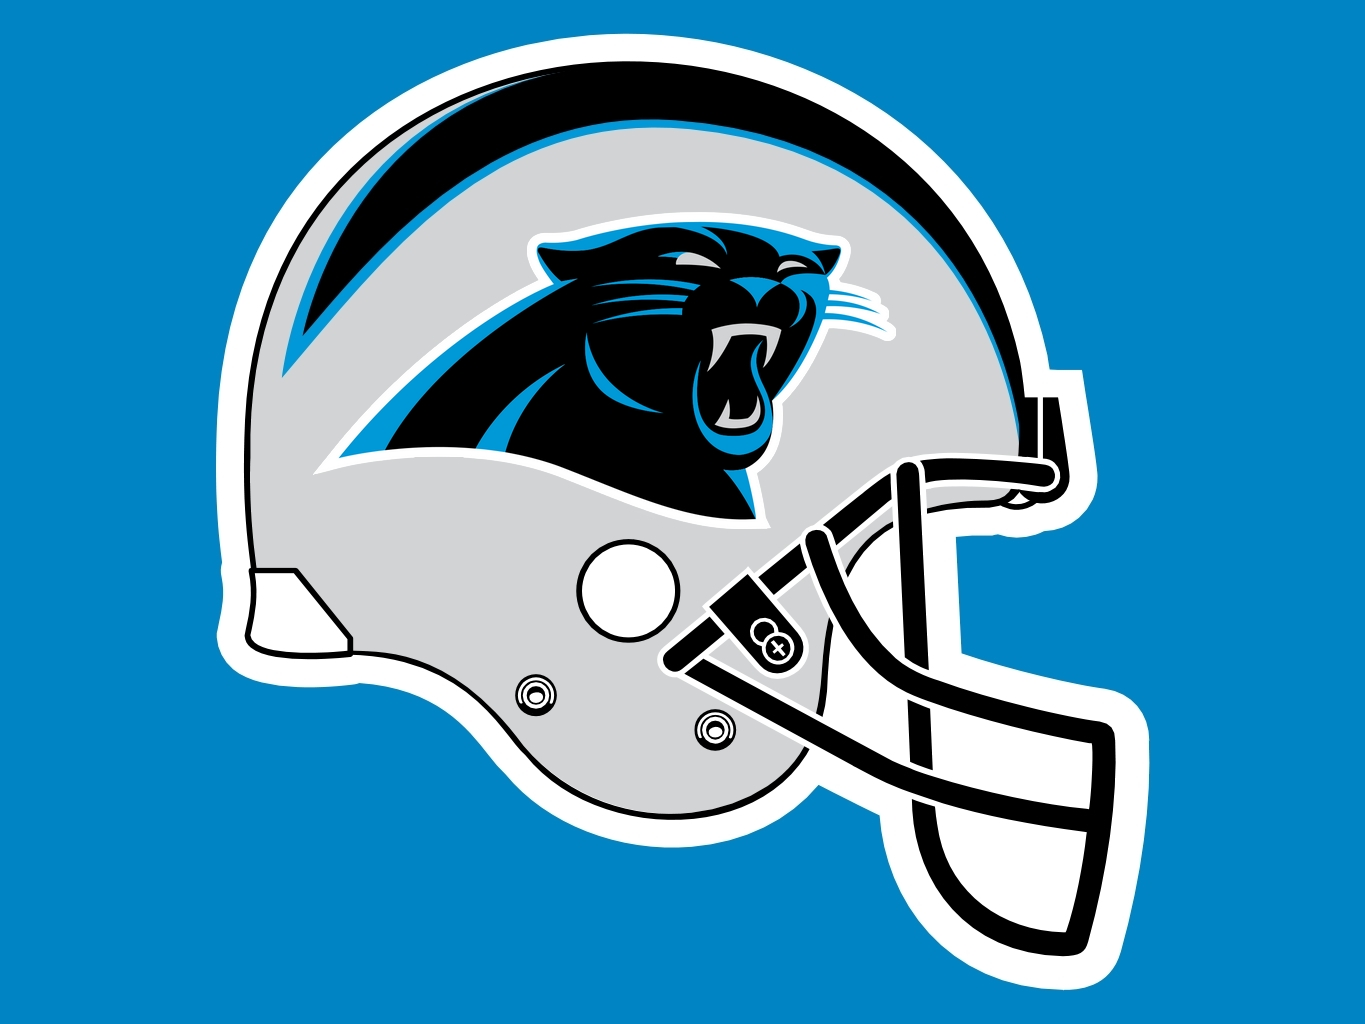 Carolina panthers videos images and buzz